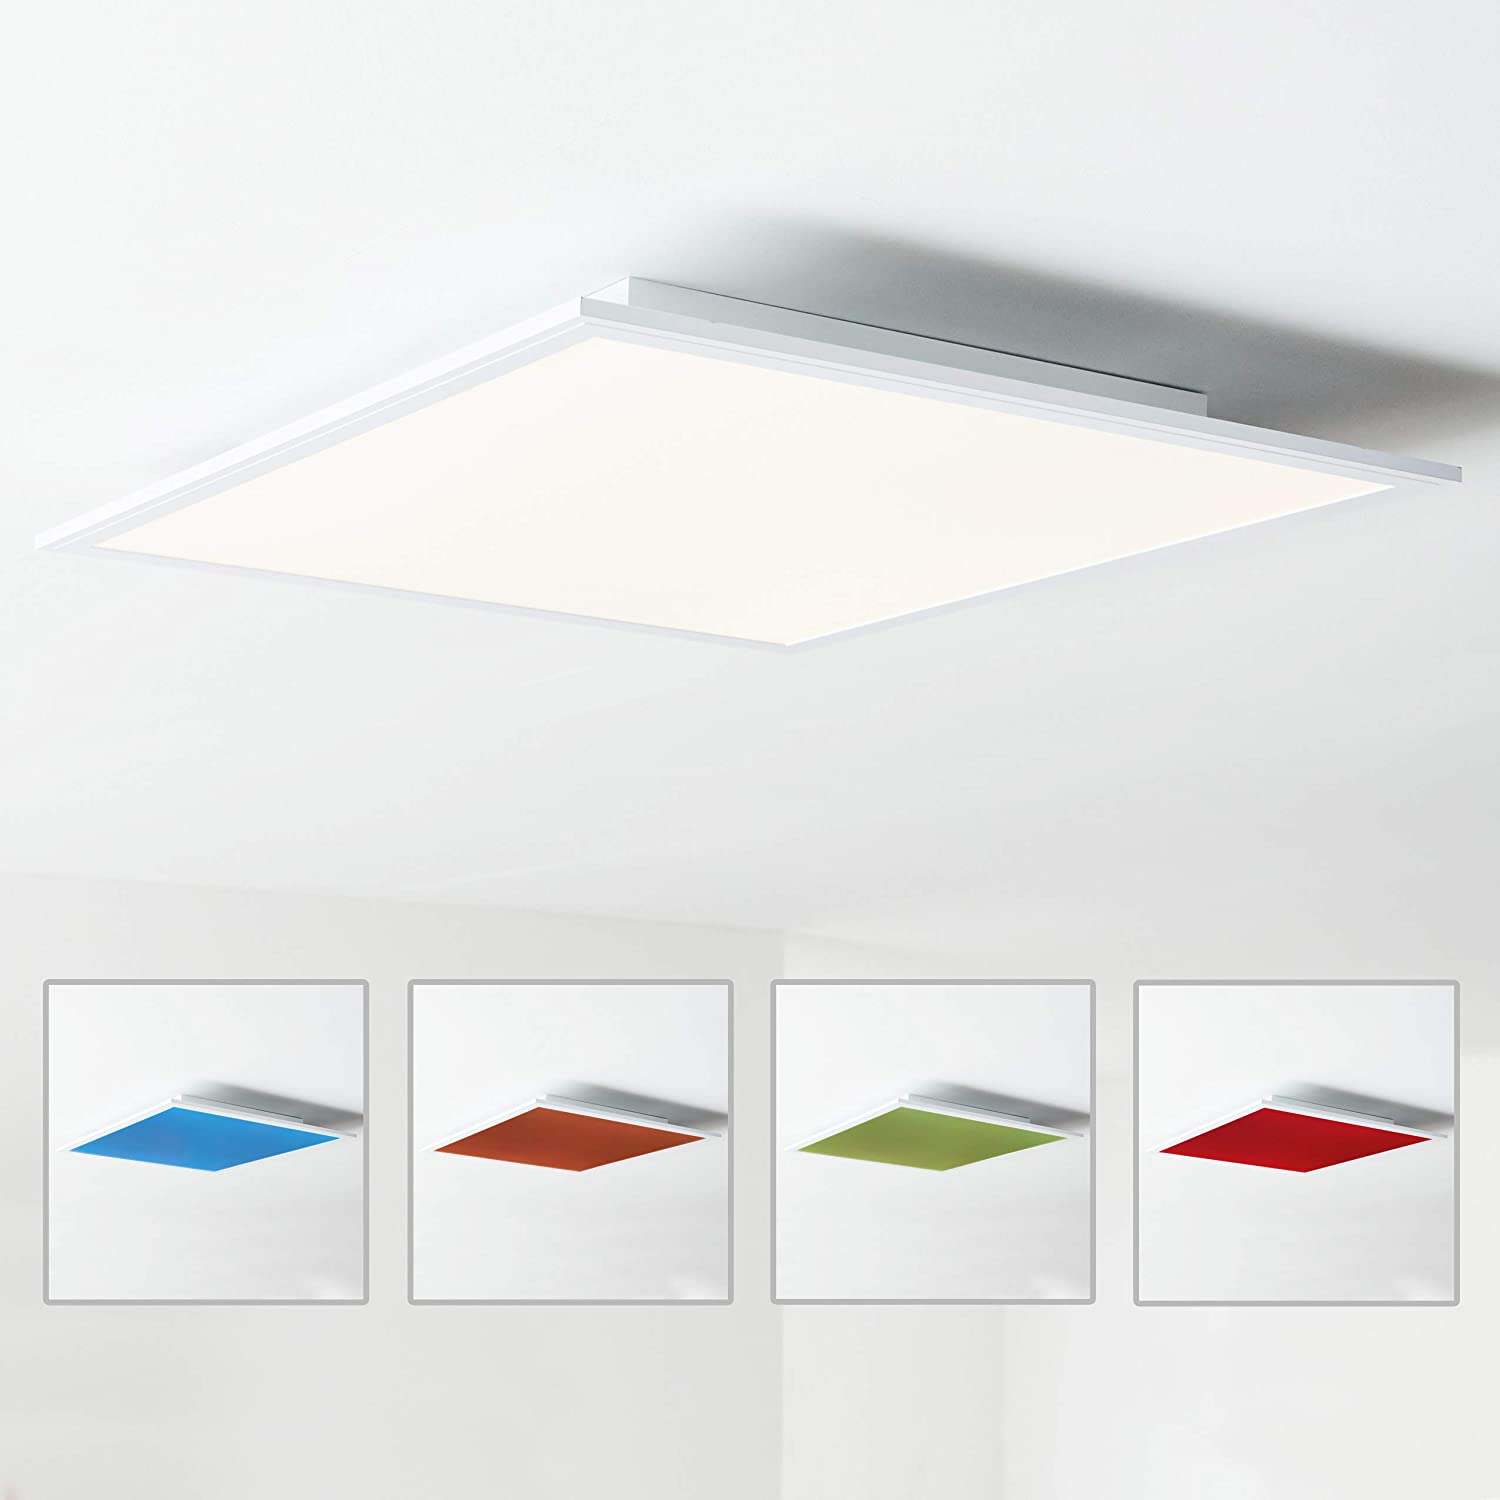 Panel LED para techo, 60 x 60 cm, cambio de color entre rojo, amarillo y azul, con mando a distancia, 1 x 40 W LED integrado, 1 x 4000 lúmenes, 2700 – 6500 K, metal/plástico, blanco